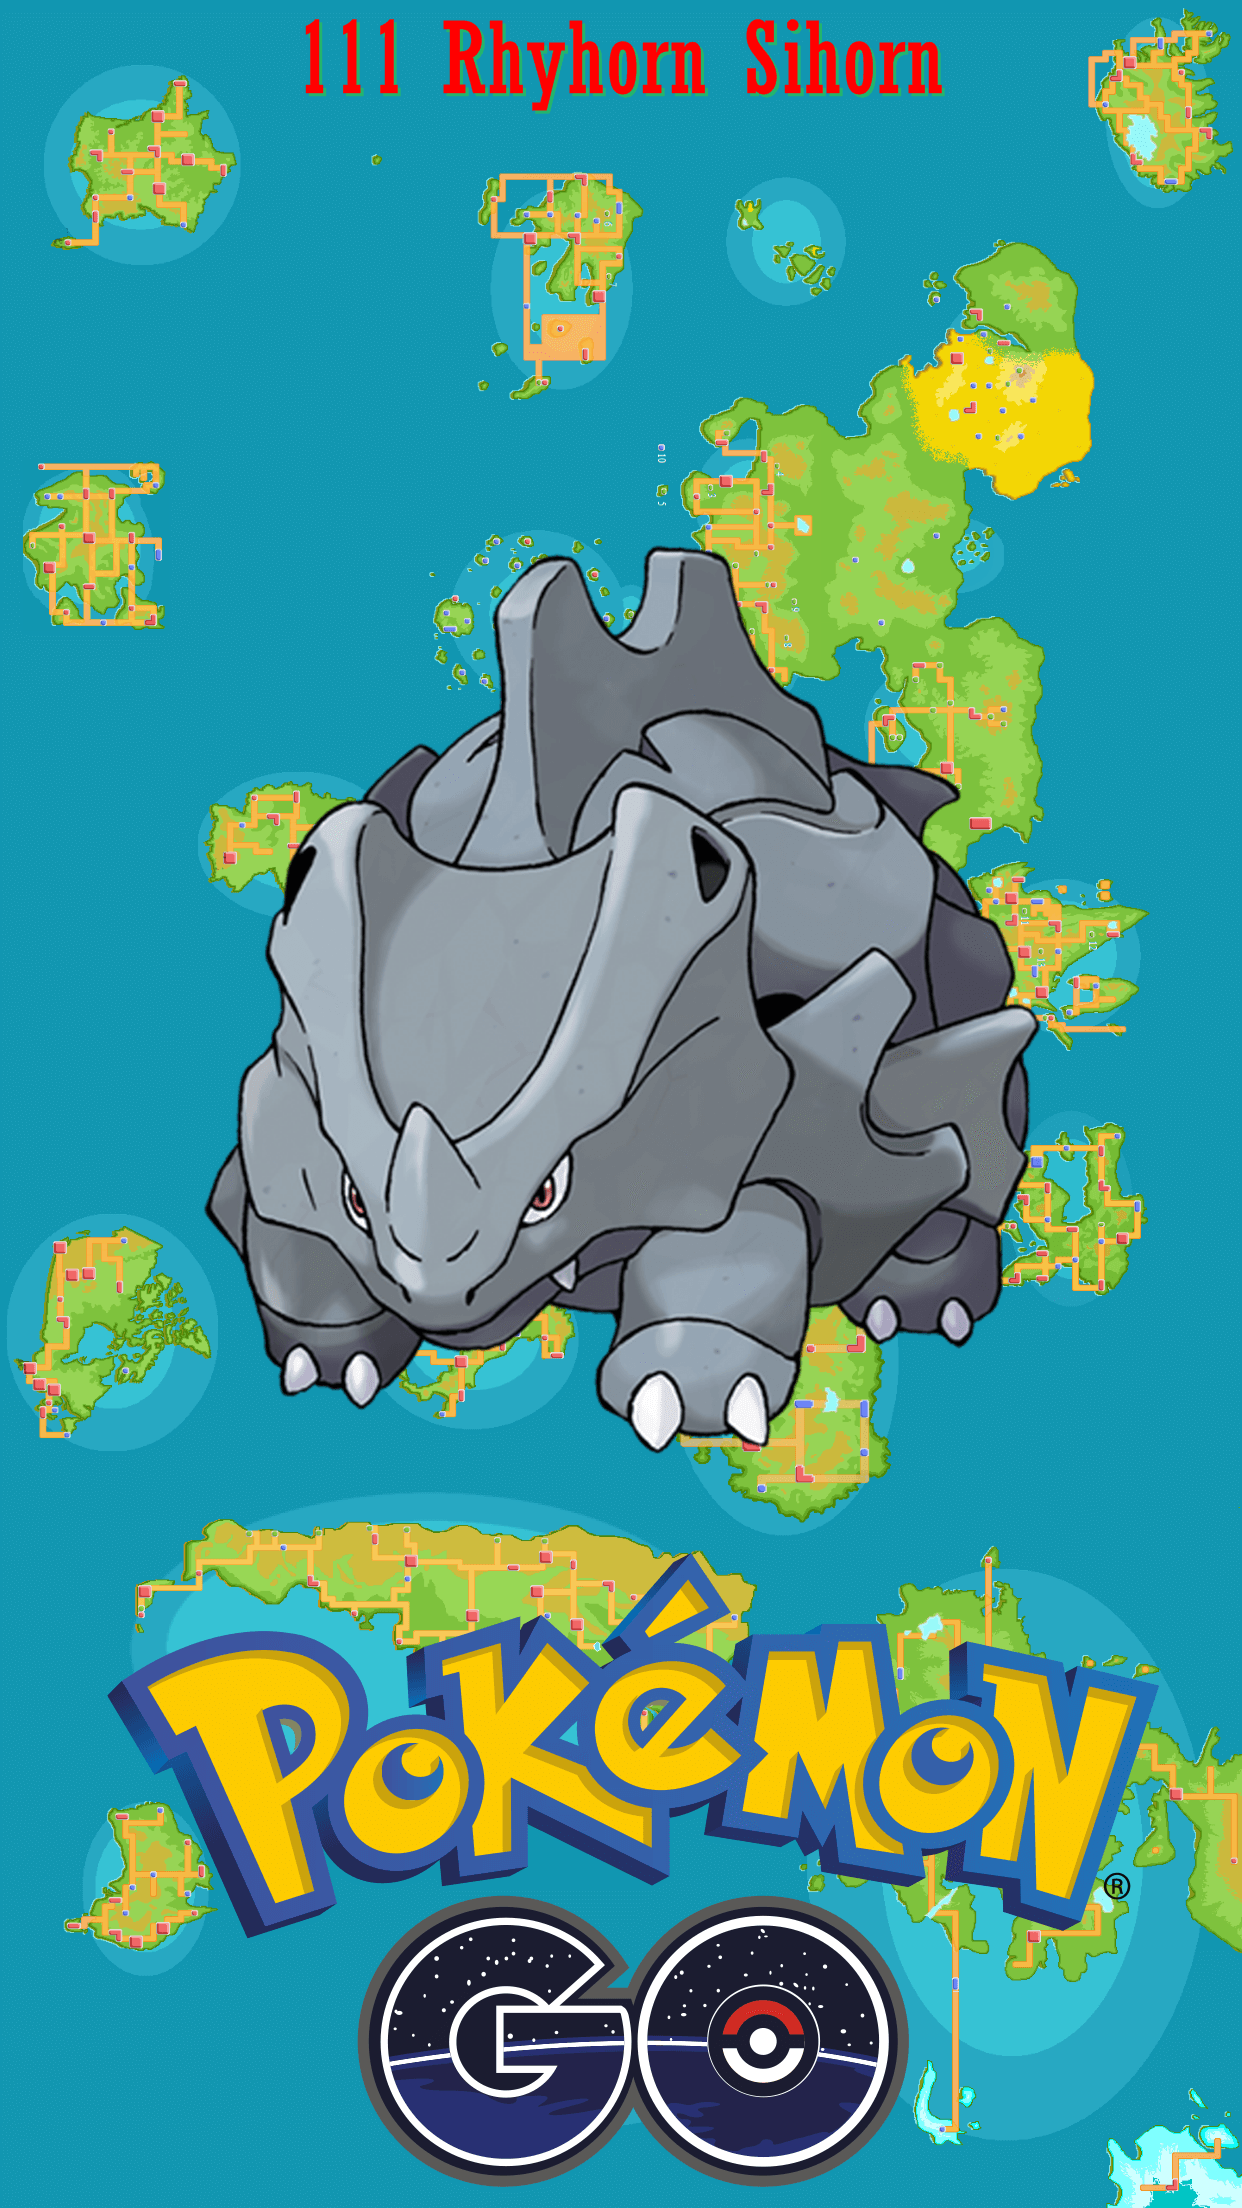 111 Street Map Rhyhorn Sihorn | Wallpaper